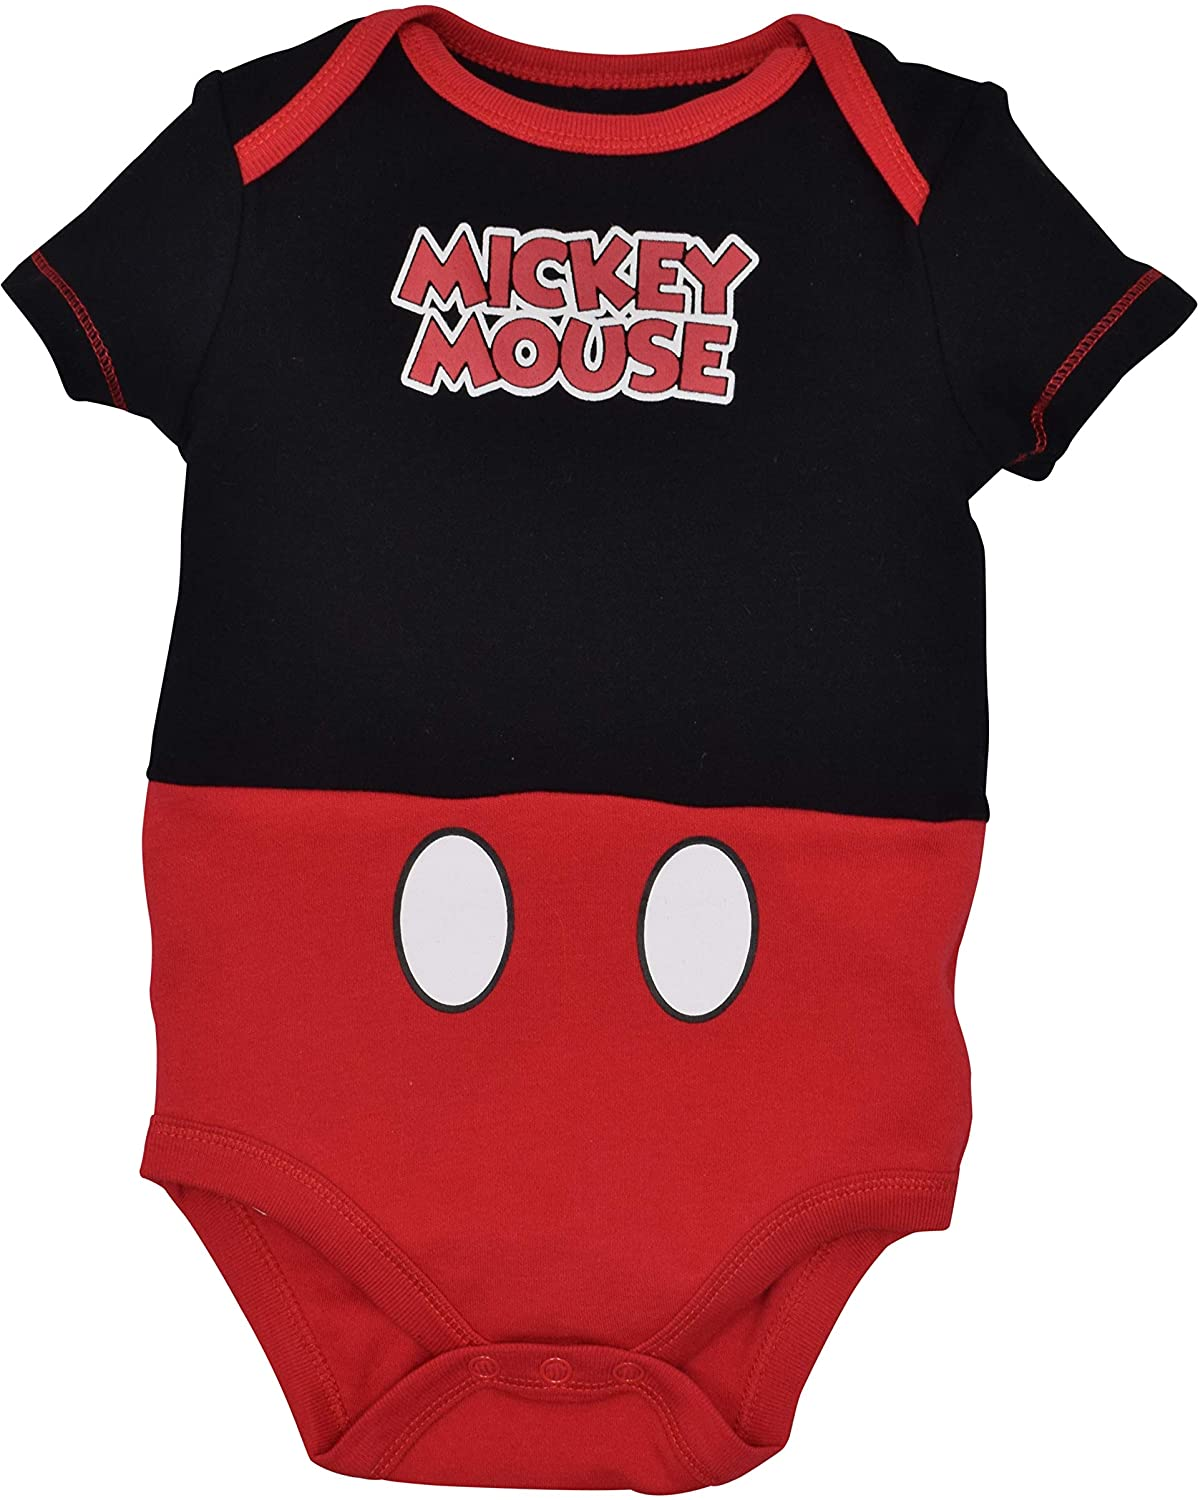 Disney Mickey Mouse Baby Boys 5 Pack Bodysuits